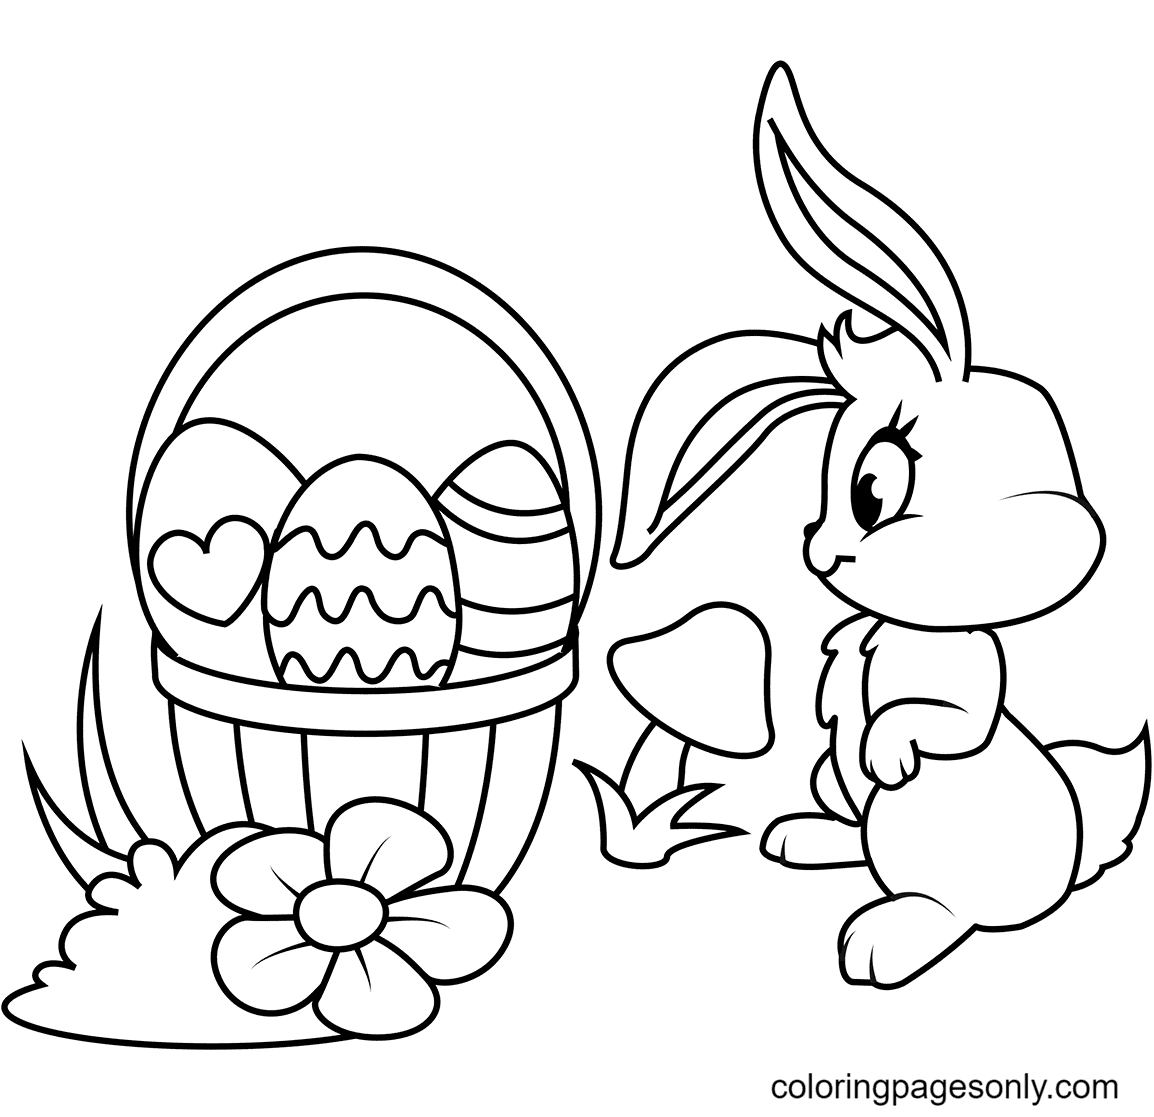 Easter Basket and Bunny Coloring Page